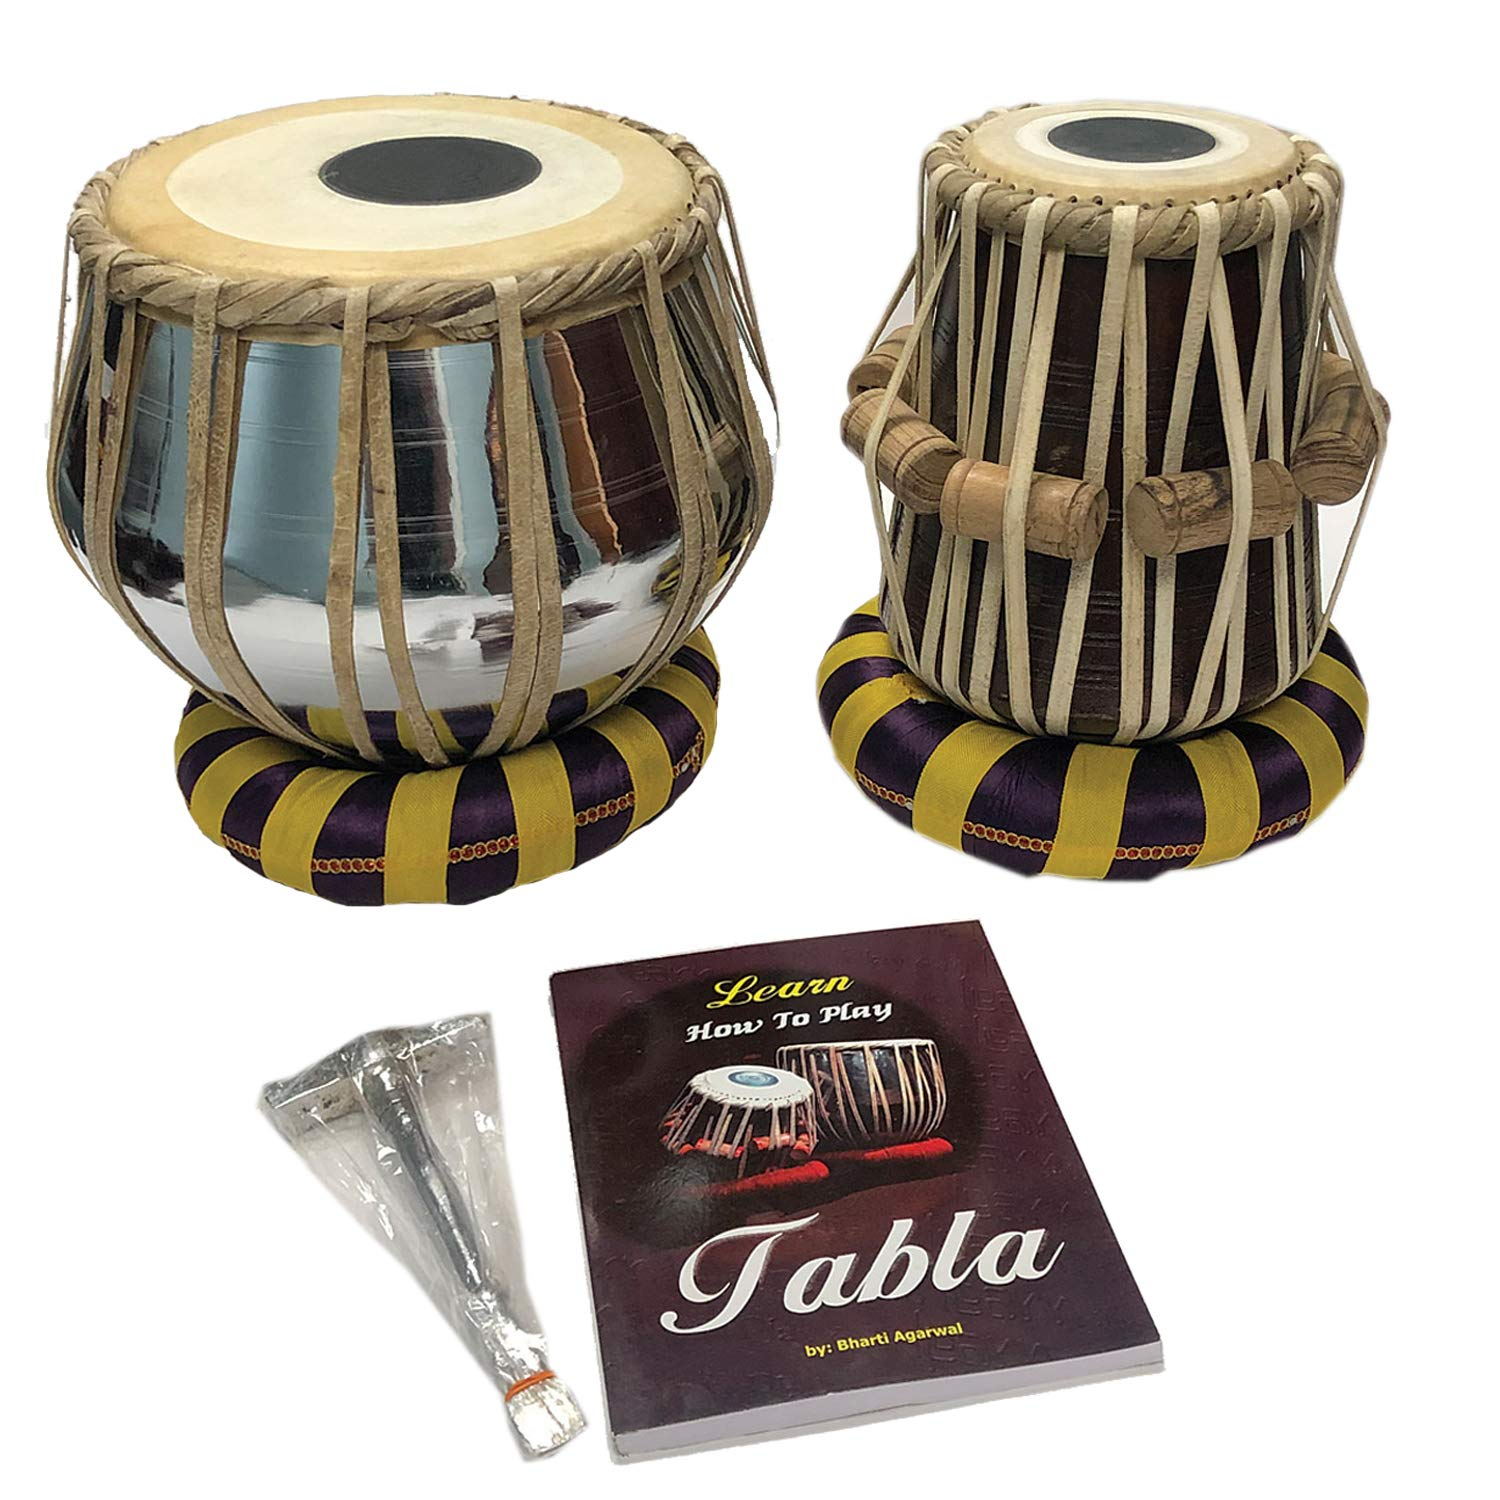 Satnam Steel Bayan Hand Crafted Professional Steel Tabla Drum Set for Student and Beginners with Tabla Set Gig Bag   Tabla Set Hammer   Tabla Set - Music Book   Tabla Cushions & Cover - Made in India by Satnam